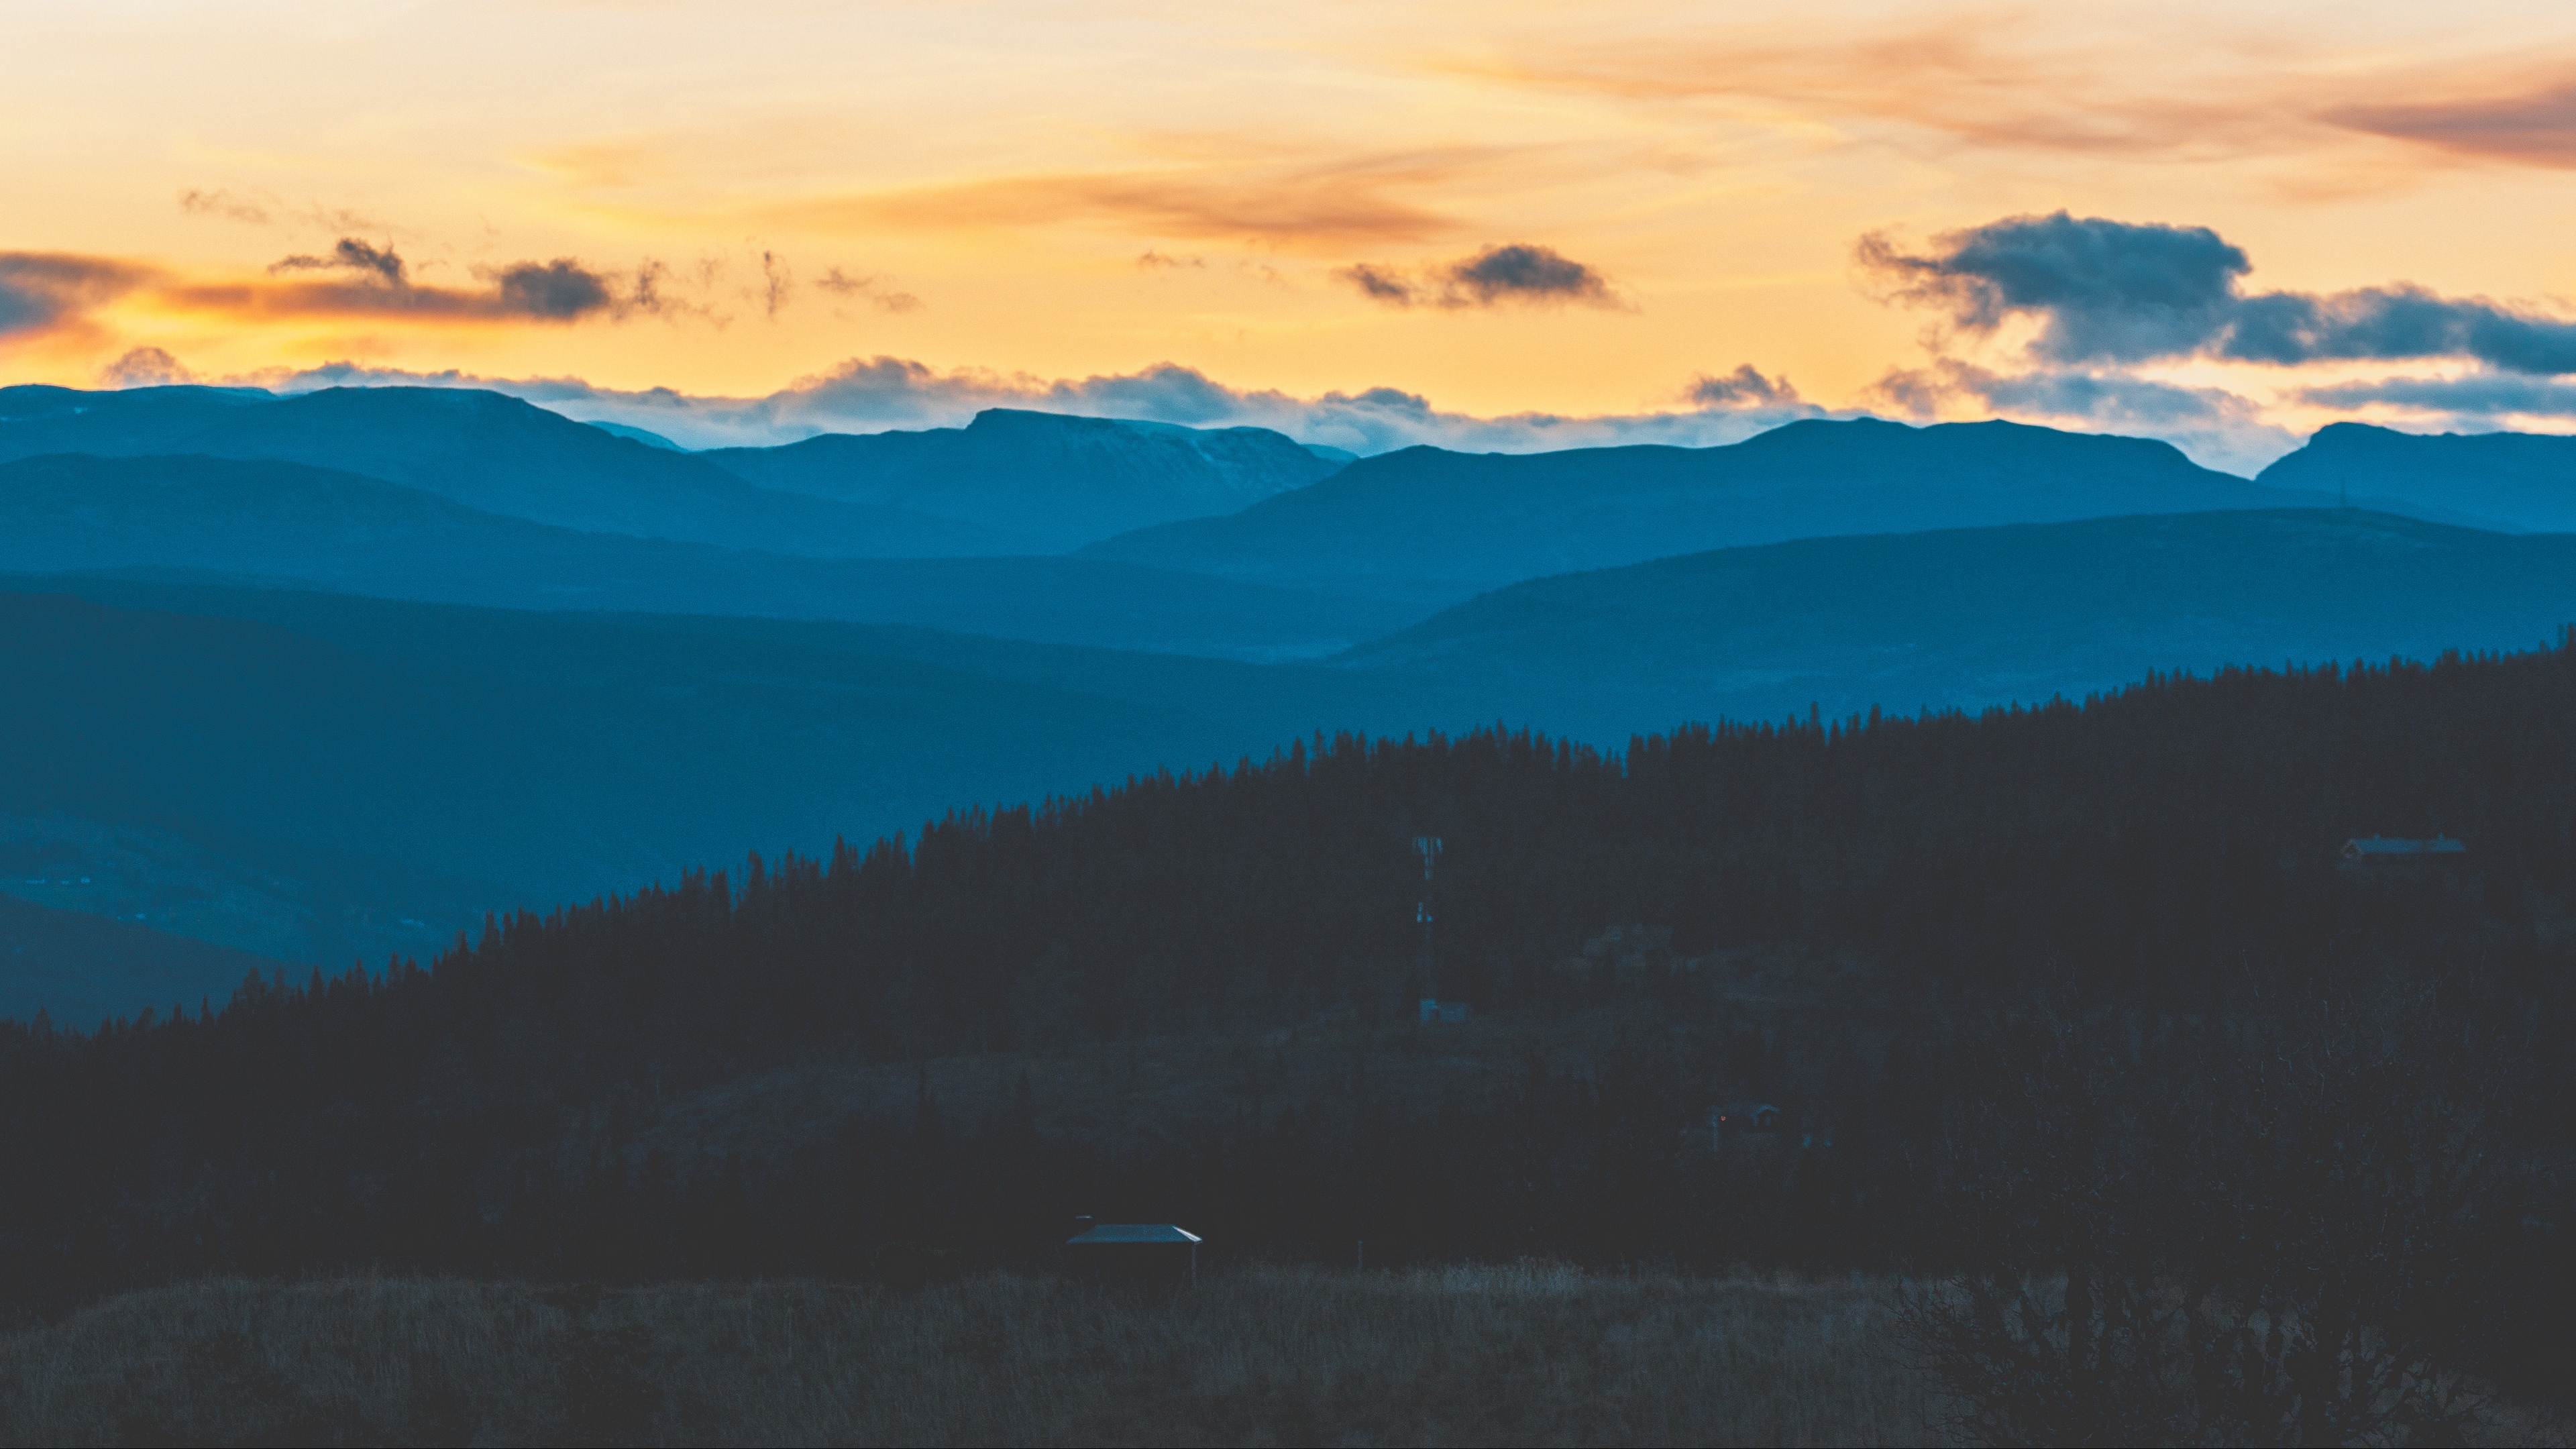 mountains evening sky clouds 4k 1541116622 - mountains, evening, sky, clouds 4k - Sky, Mountains, Evening